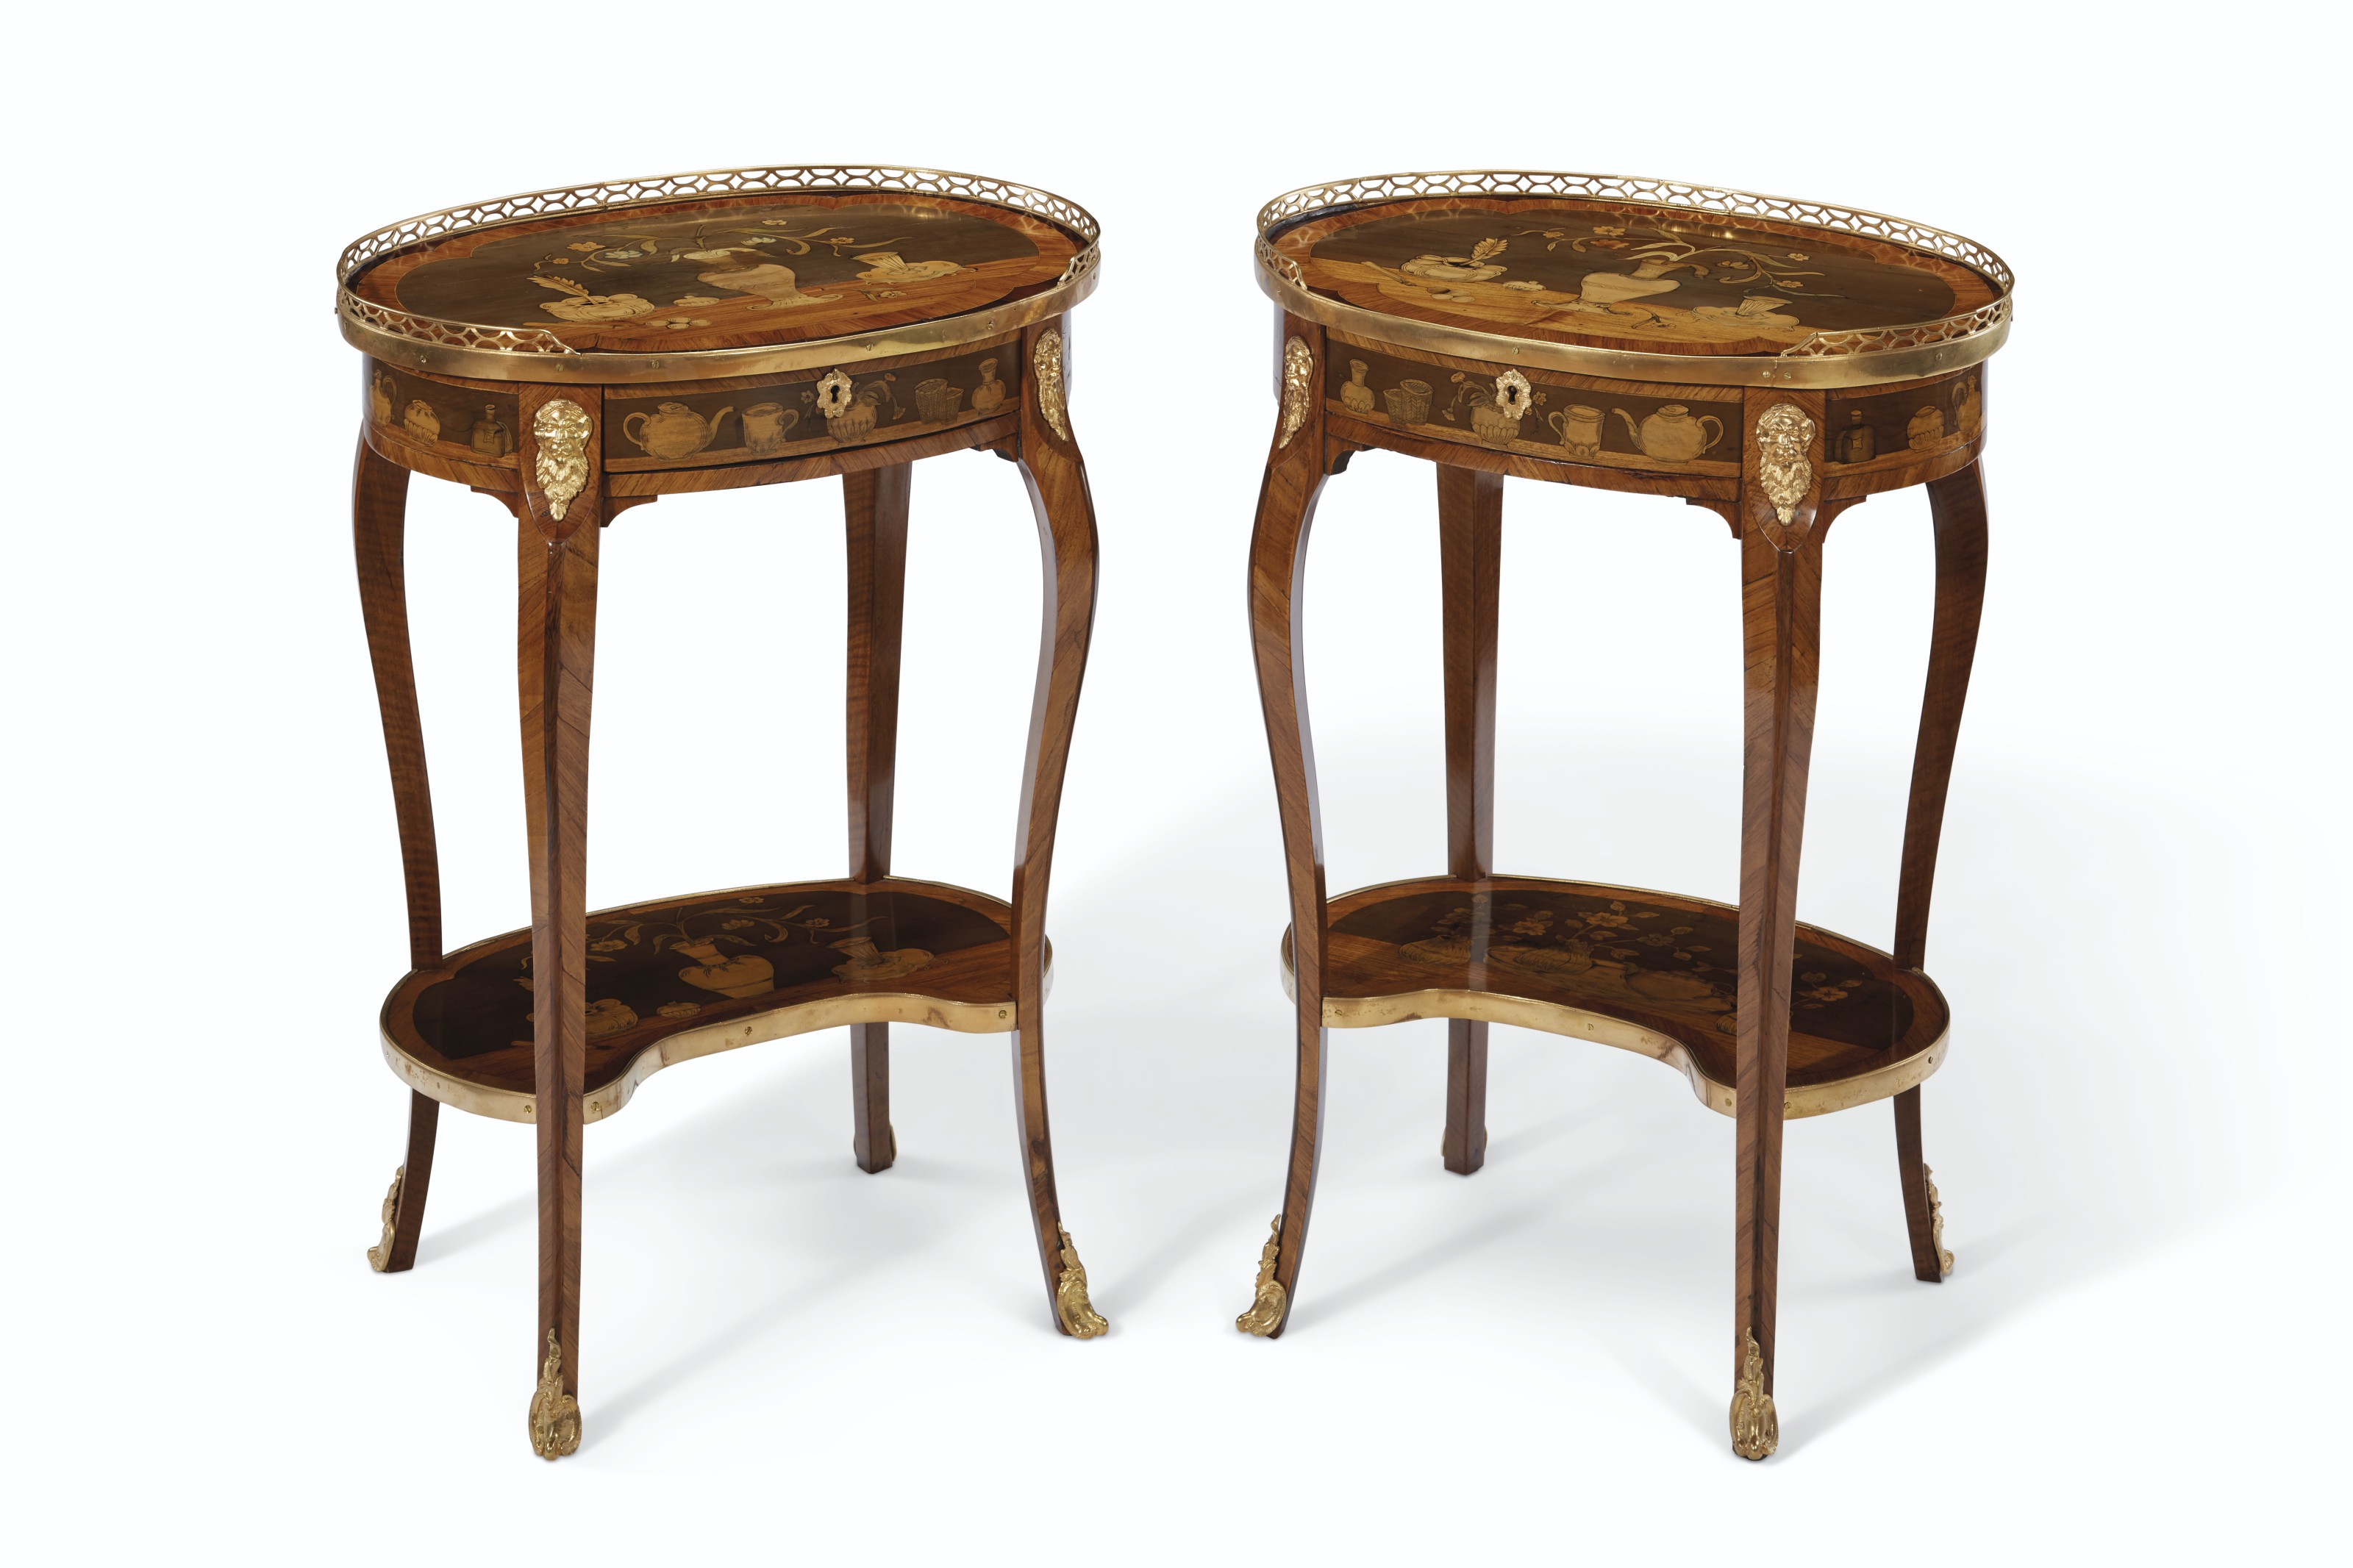 A PAIR OF LATE LOUIS XV ORMOLU-MOUNTED TULIPWOOD AND MARQUETRY OCCASIONAL...